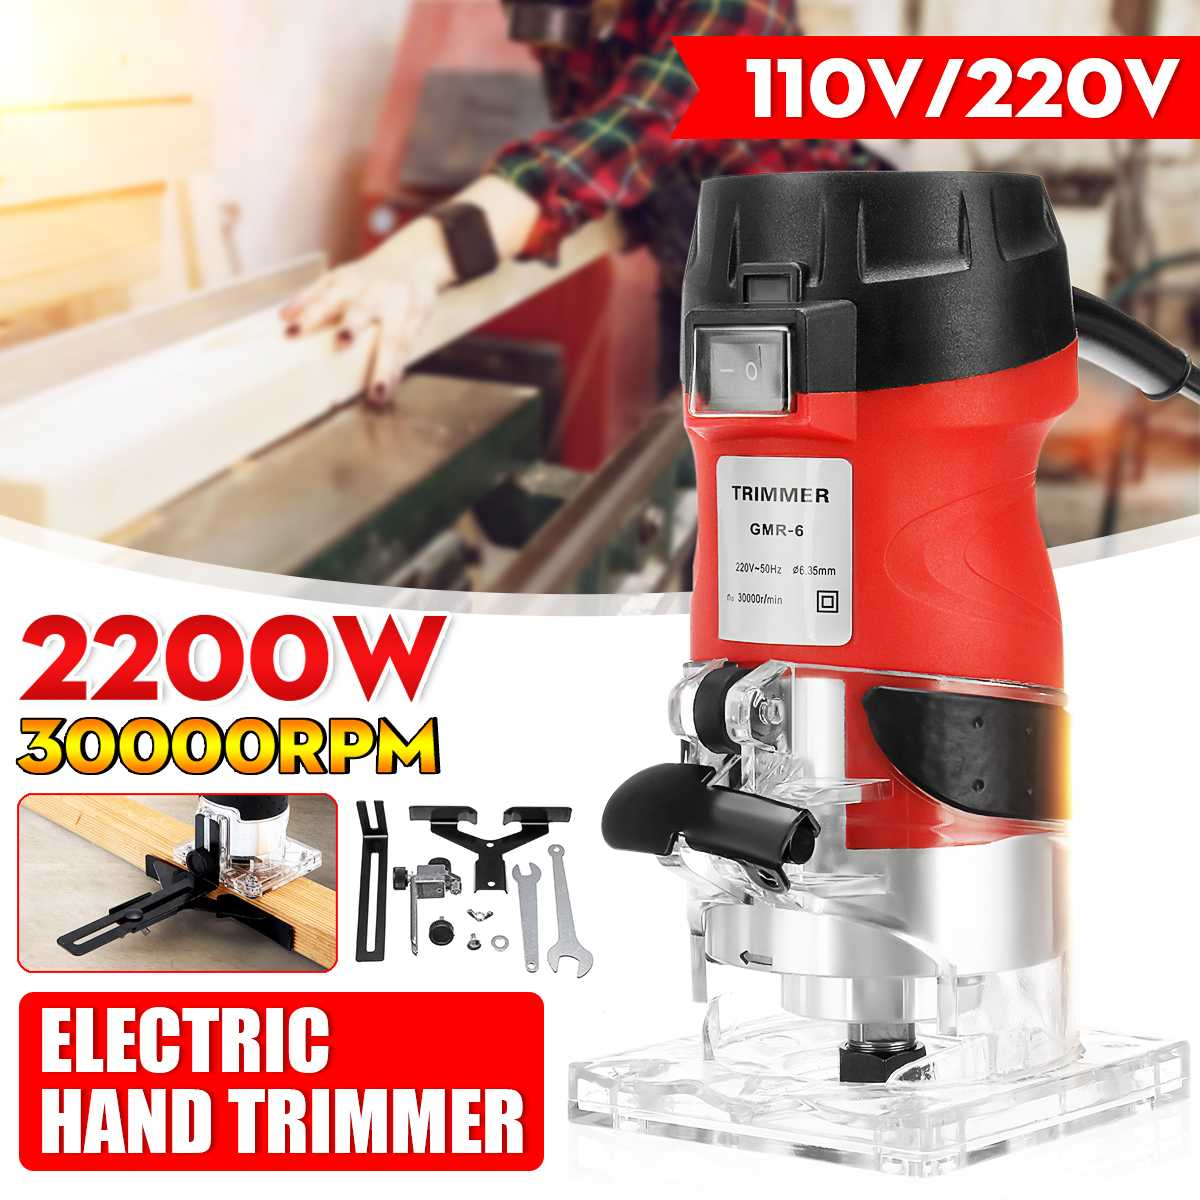 110V/220V 2200W 30000RMP 6.35mm Red Electric Hand Trimmer Wood Laminate Palms Router Joiners Wood Router Woodworking Tool